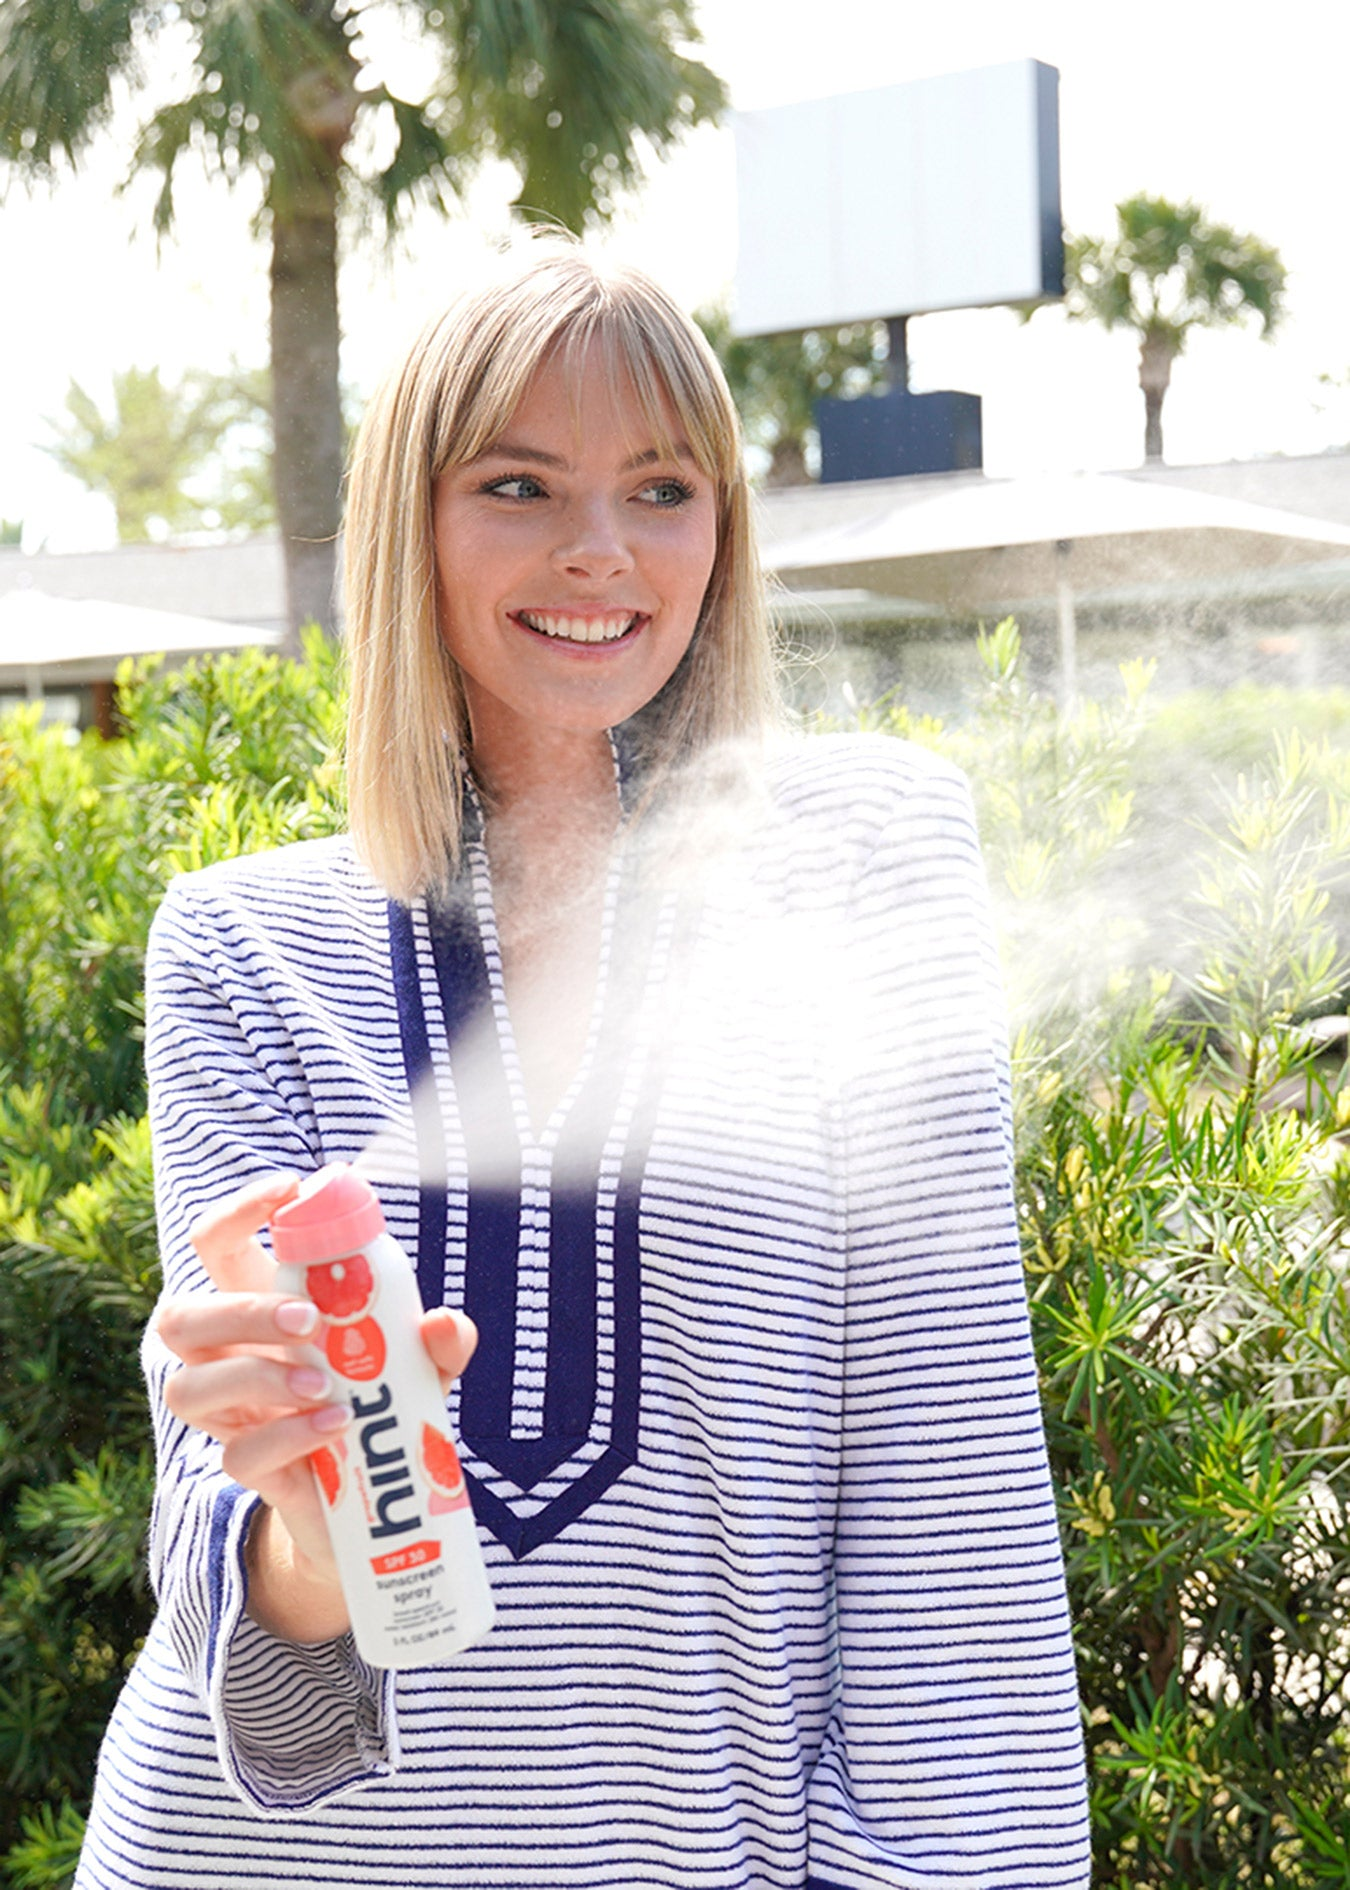 Woman wearing Navy Stripe Terry and spraying Hint sunscreen